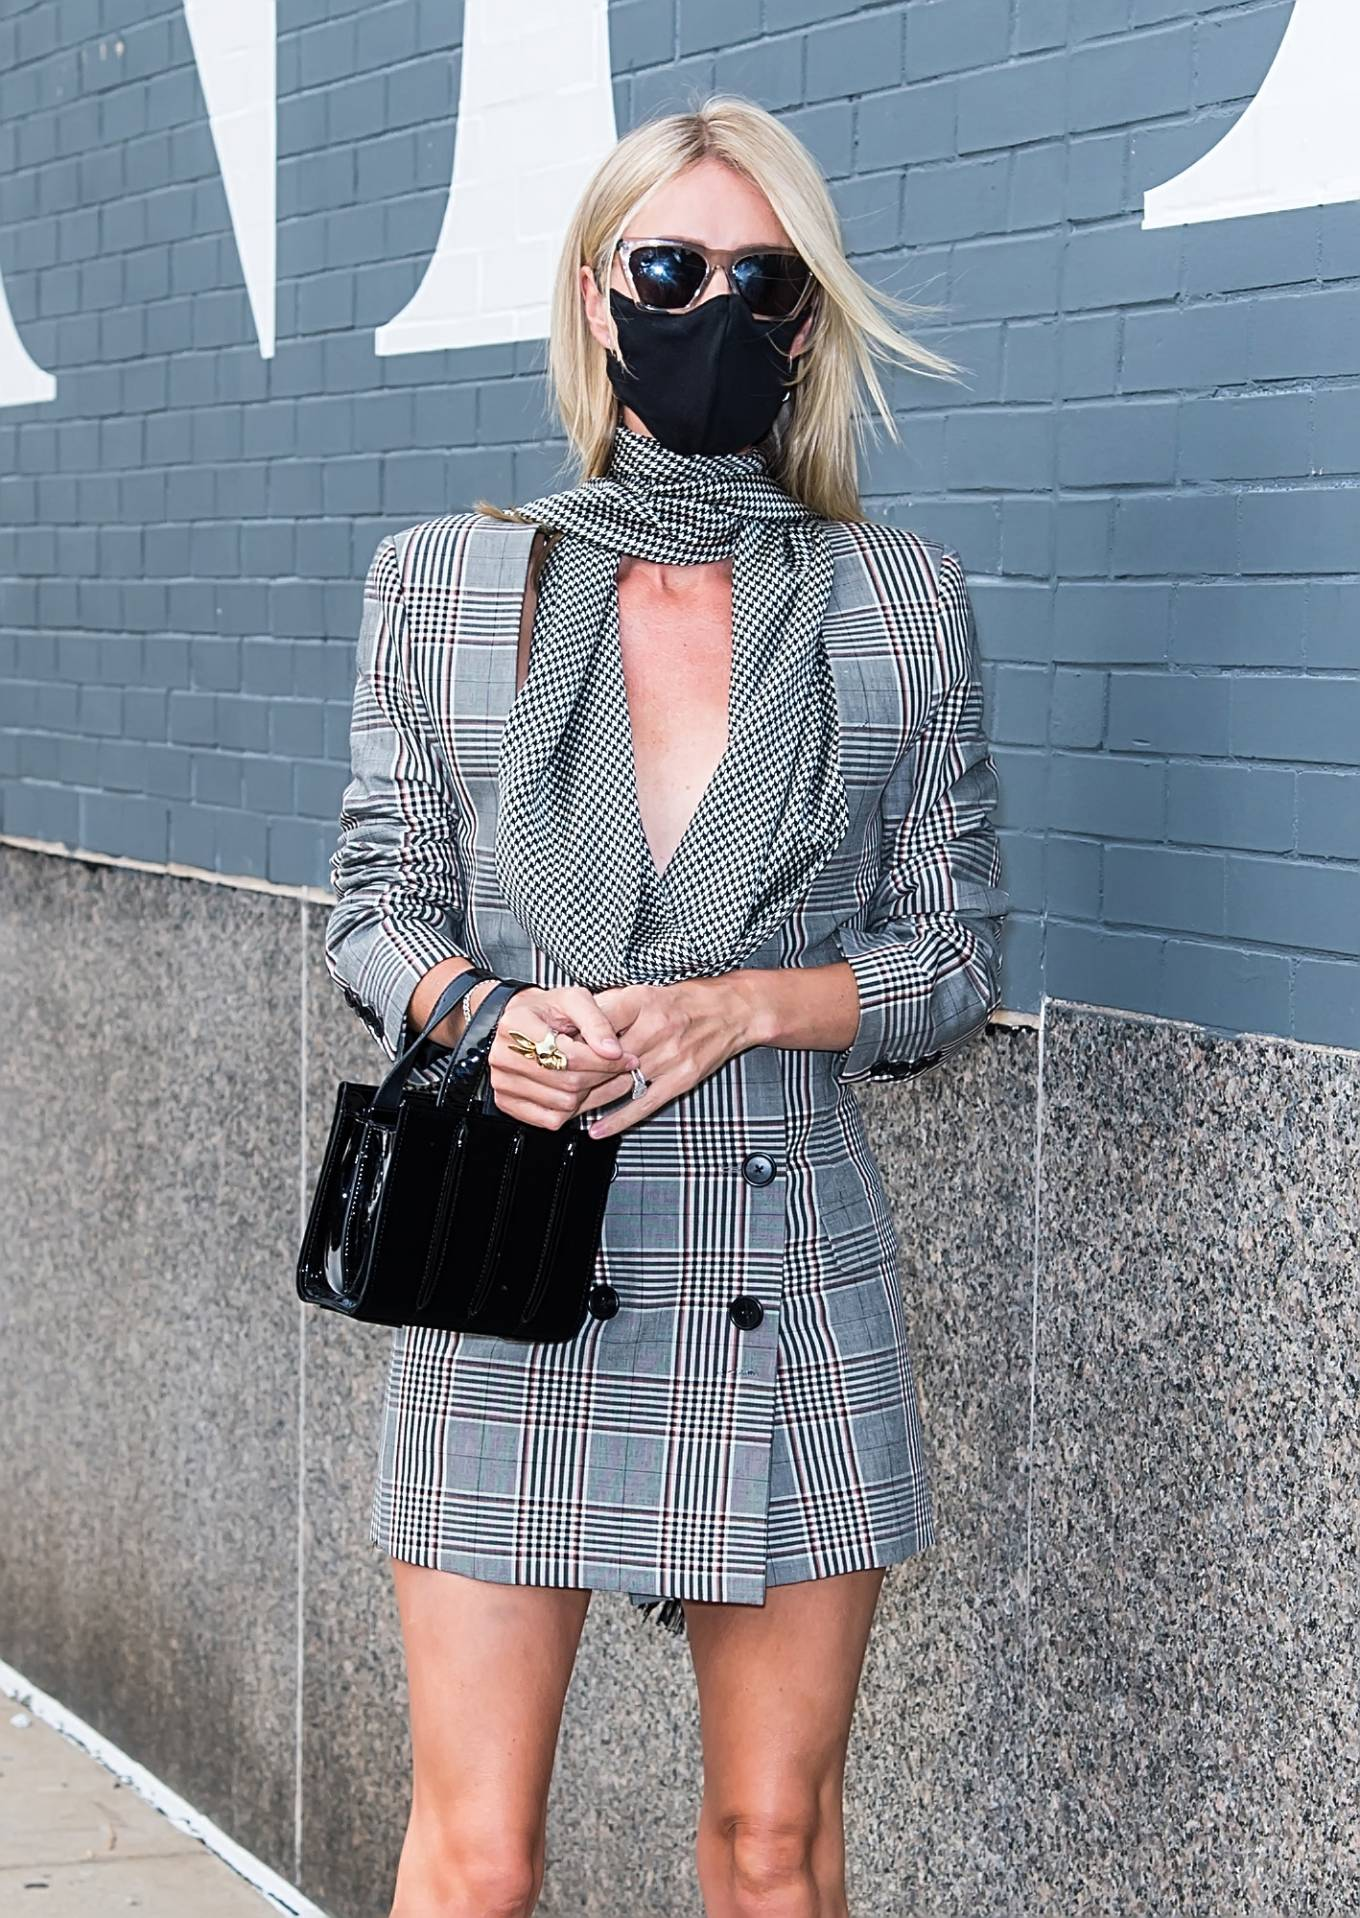 Nicky Hilton 2020 : Nicky Hilton – New York Fashion Week – Monse Fall-Winter 2020 Presentation-32